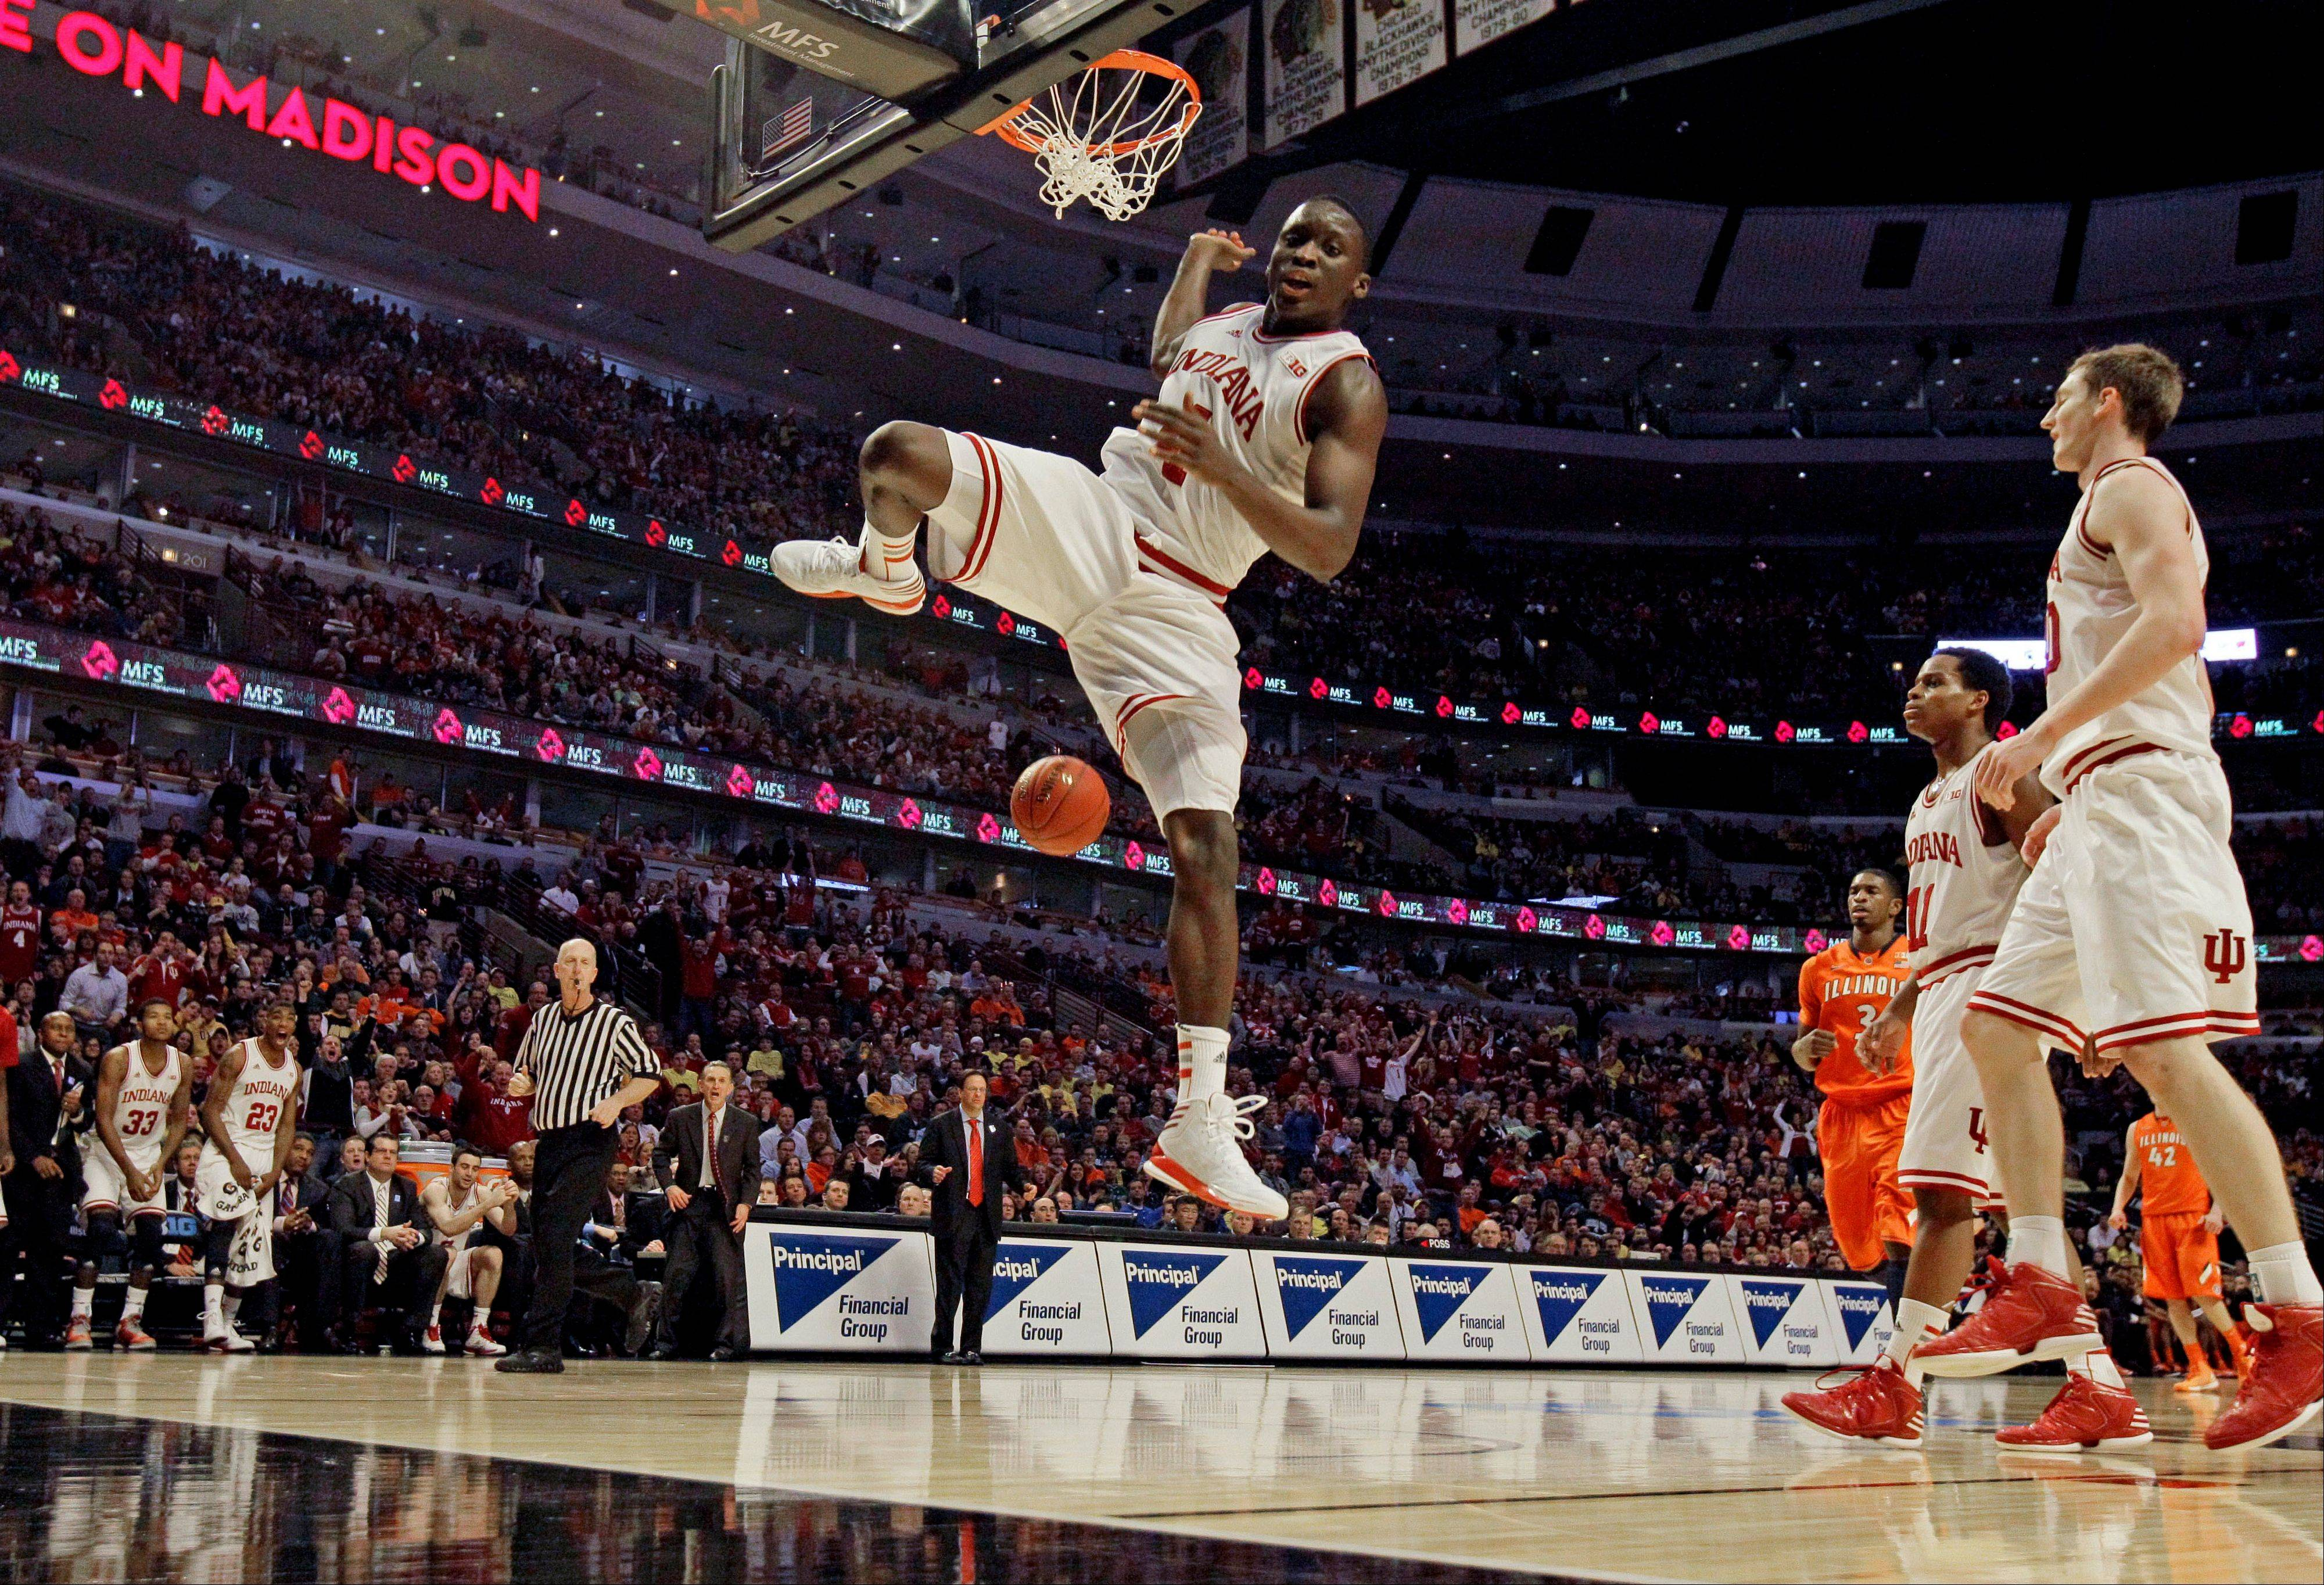 Indiana's Victor Oladipo dunks during the second half of an NCAA college basketball game at the Big Ten tournament against Illinois Friday, March 15, 2013, in Chicago. Indiana won 80-64.